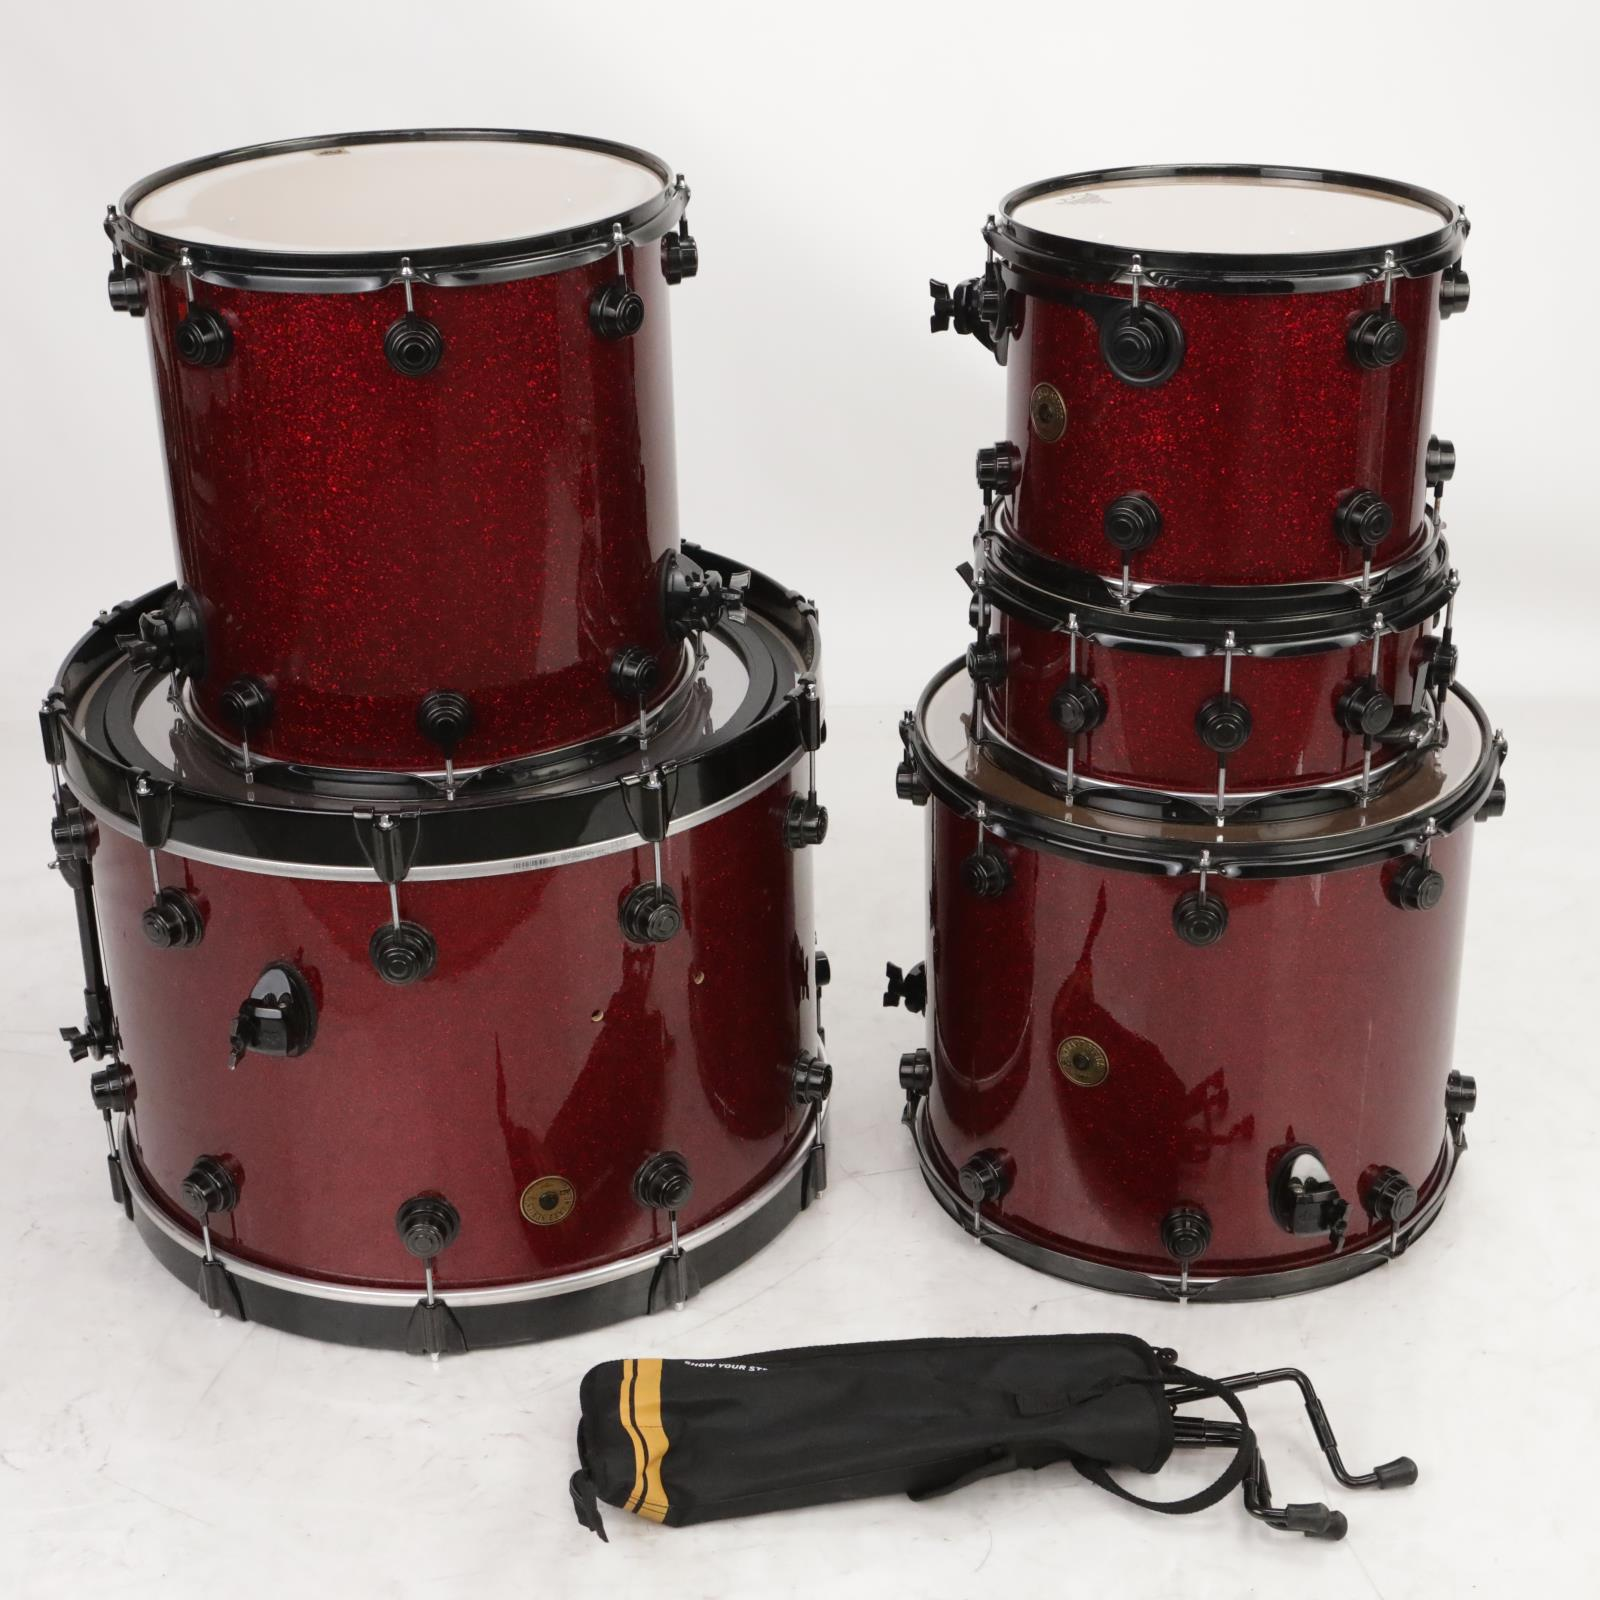 DW Jazz Series 5 pc Drums Red Sparkle Drum Kit Black Hardware Roy Mayorga #37623